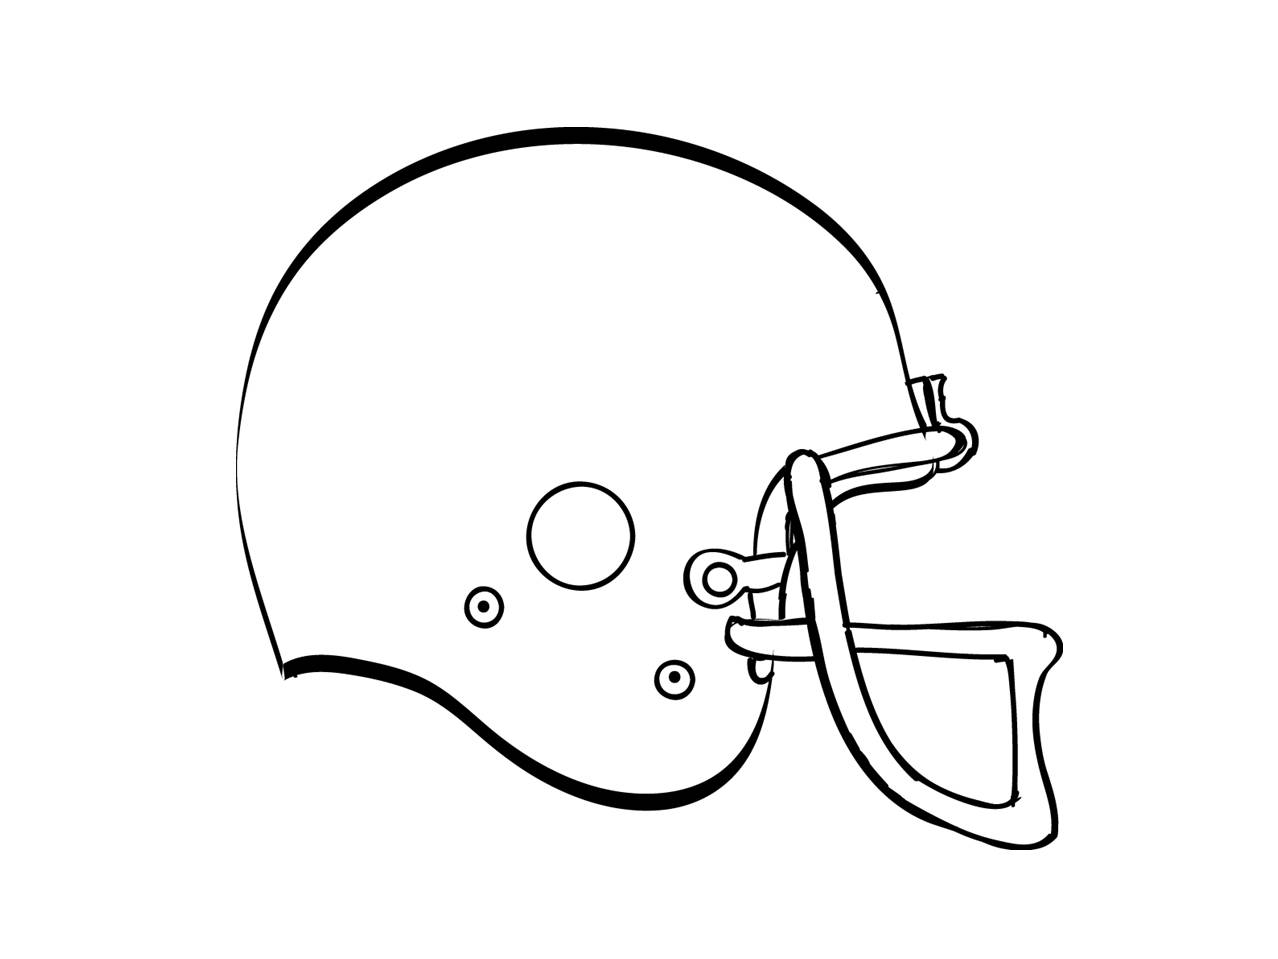 How To Draw A Football Helmet - Cliparts.co